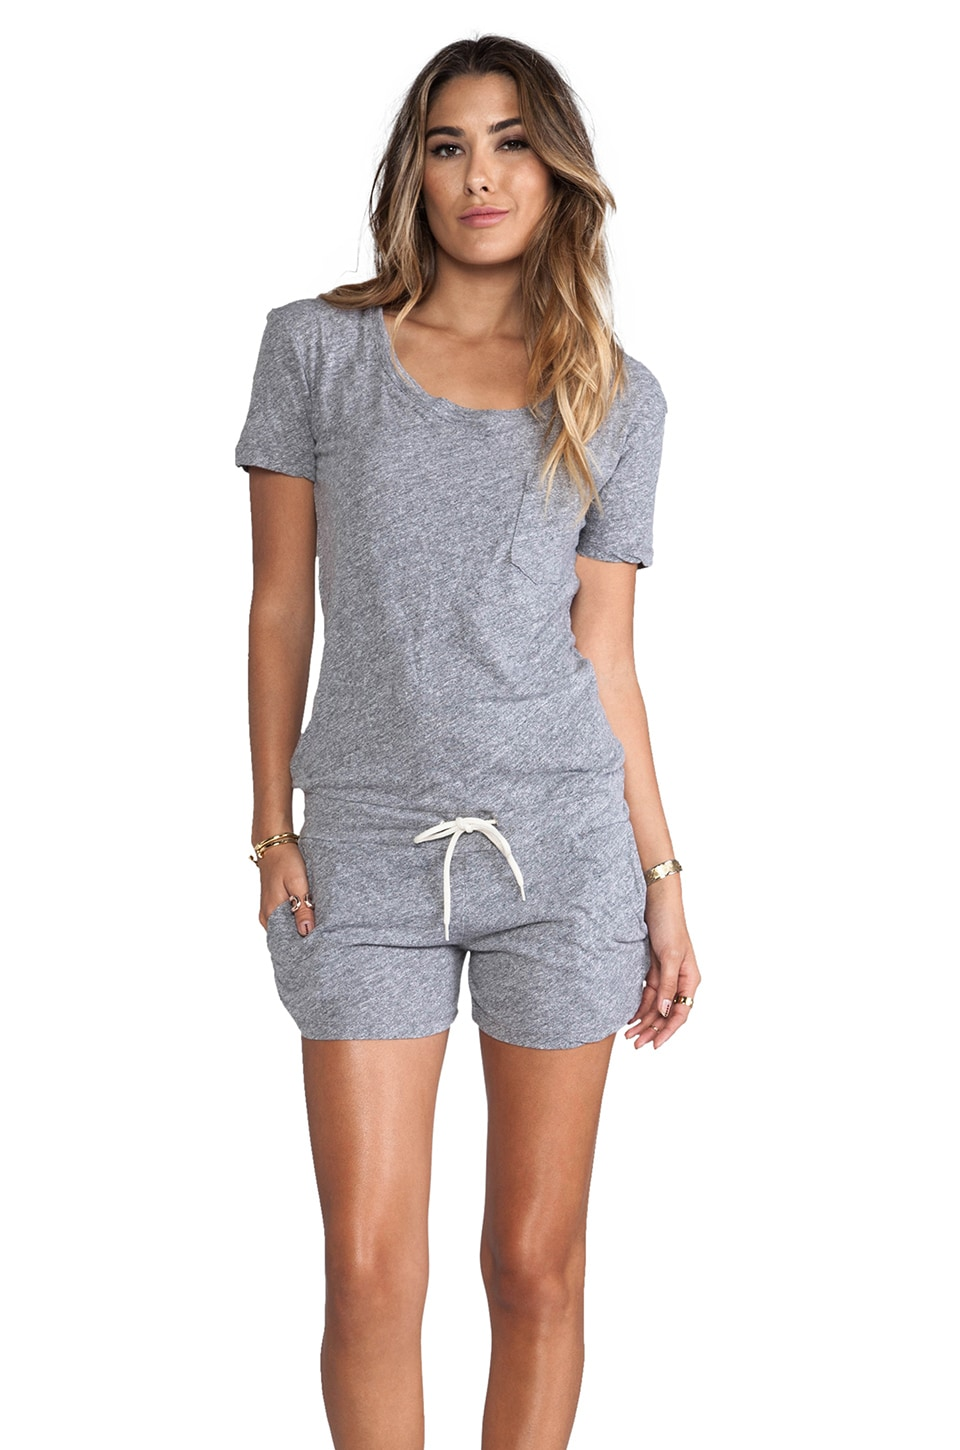 MONROW Romper in Granite